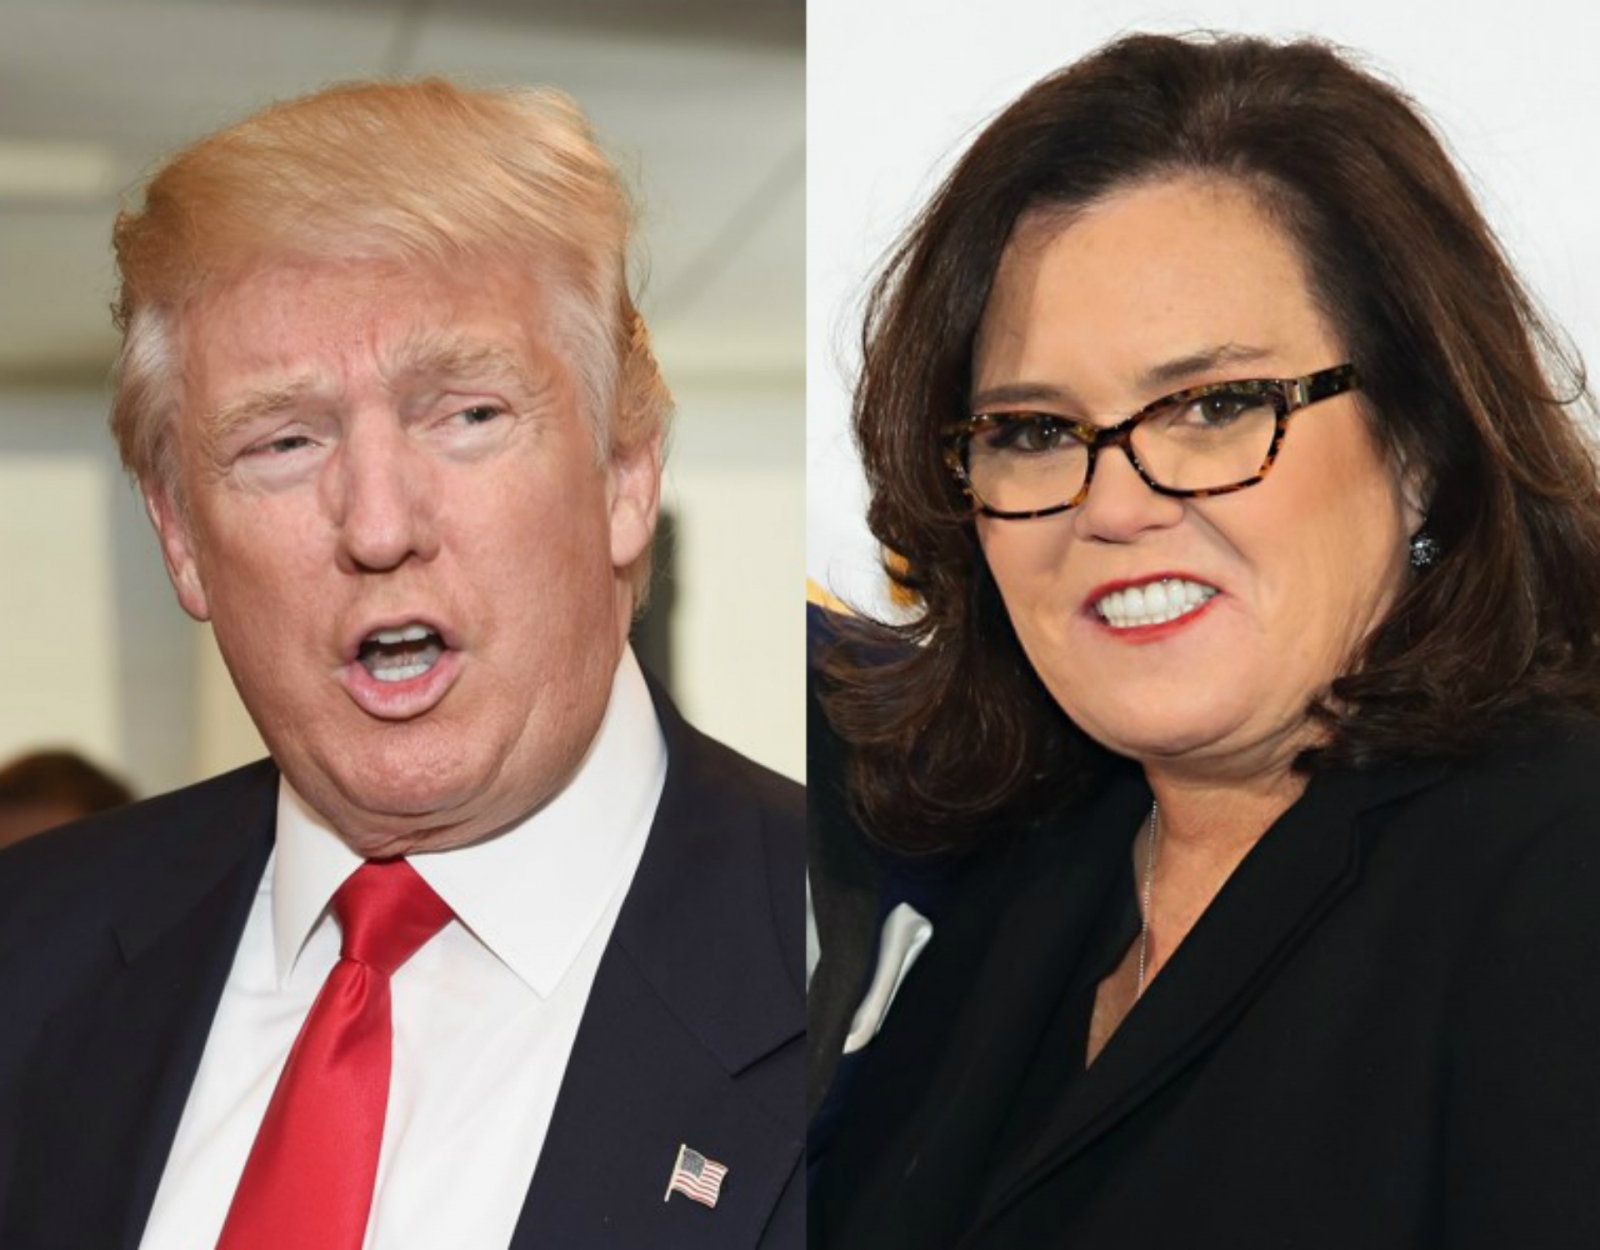 Donald Trump and Rosie O'Donnell